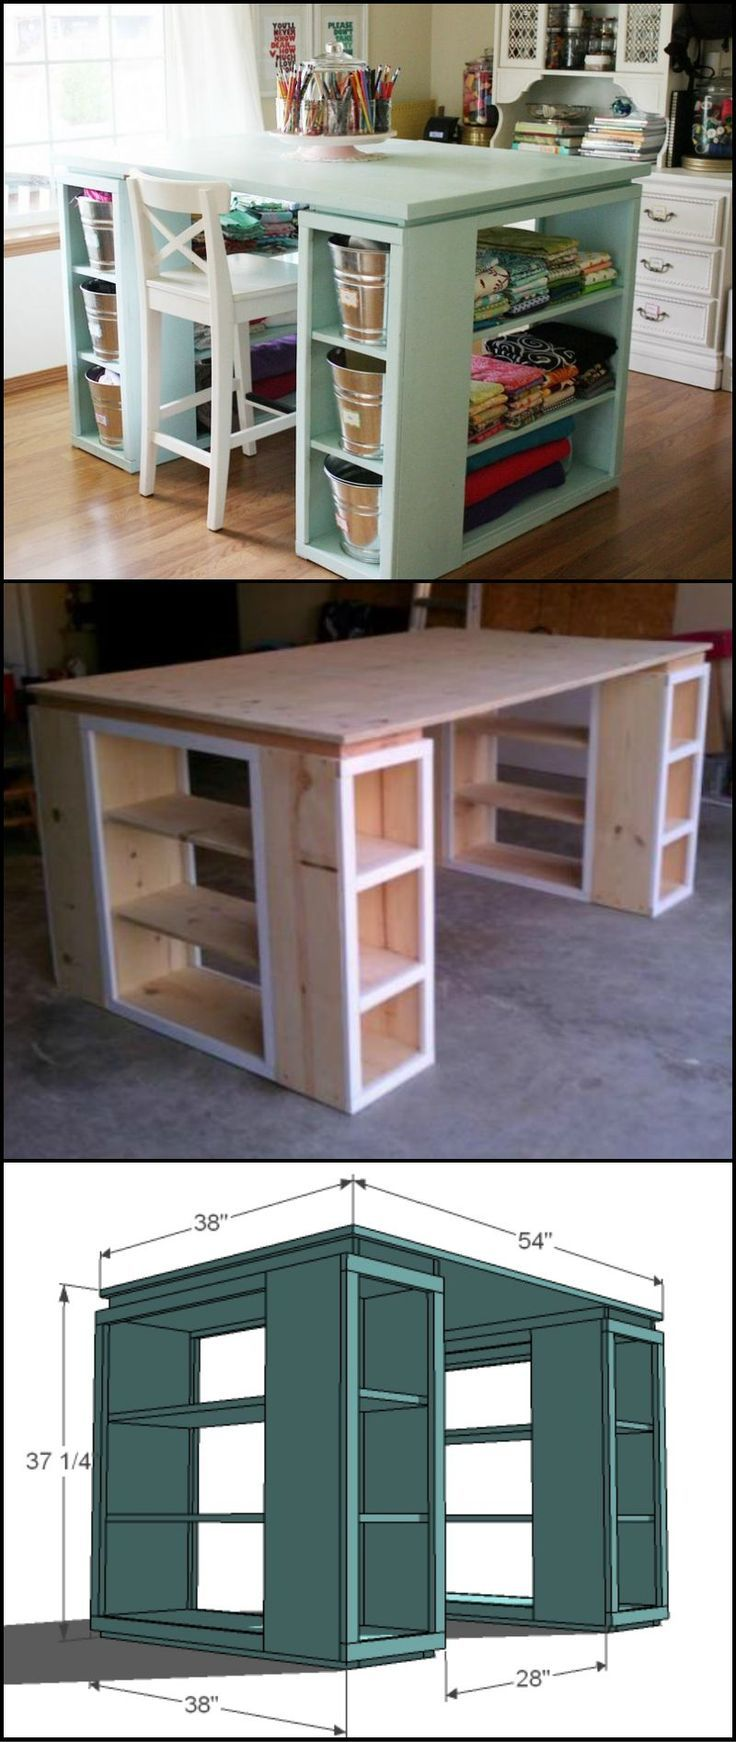 You have a simple craft project that you know you can finish in a few hours. But i